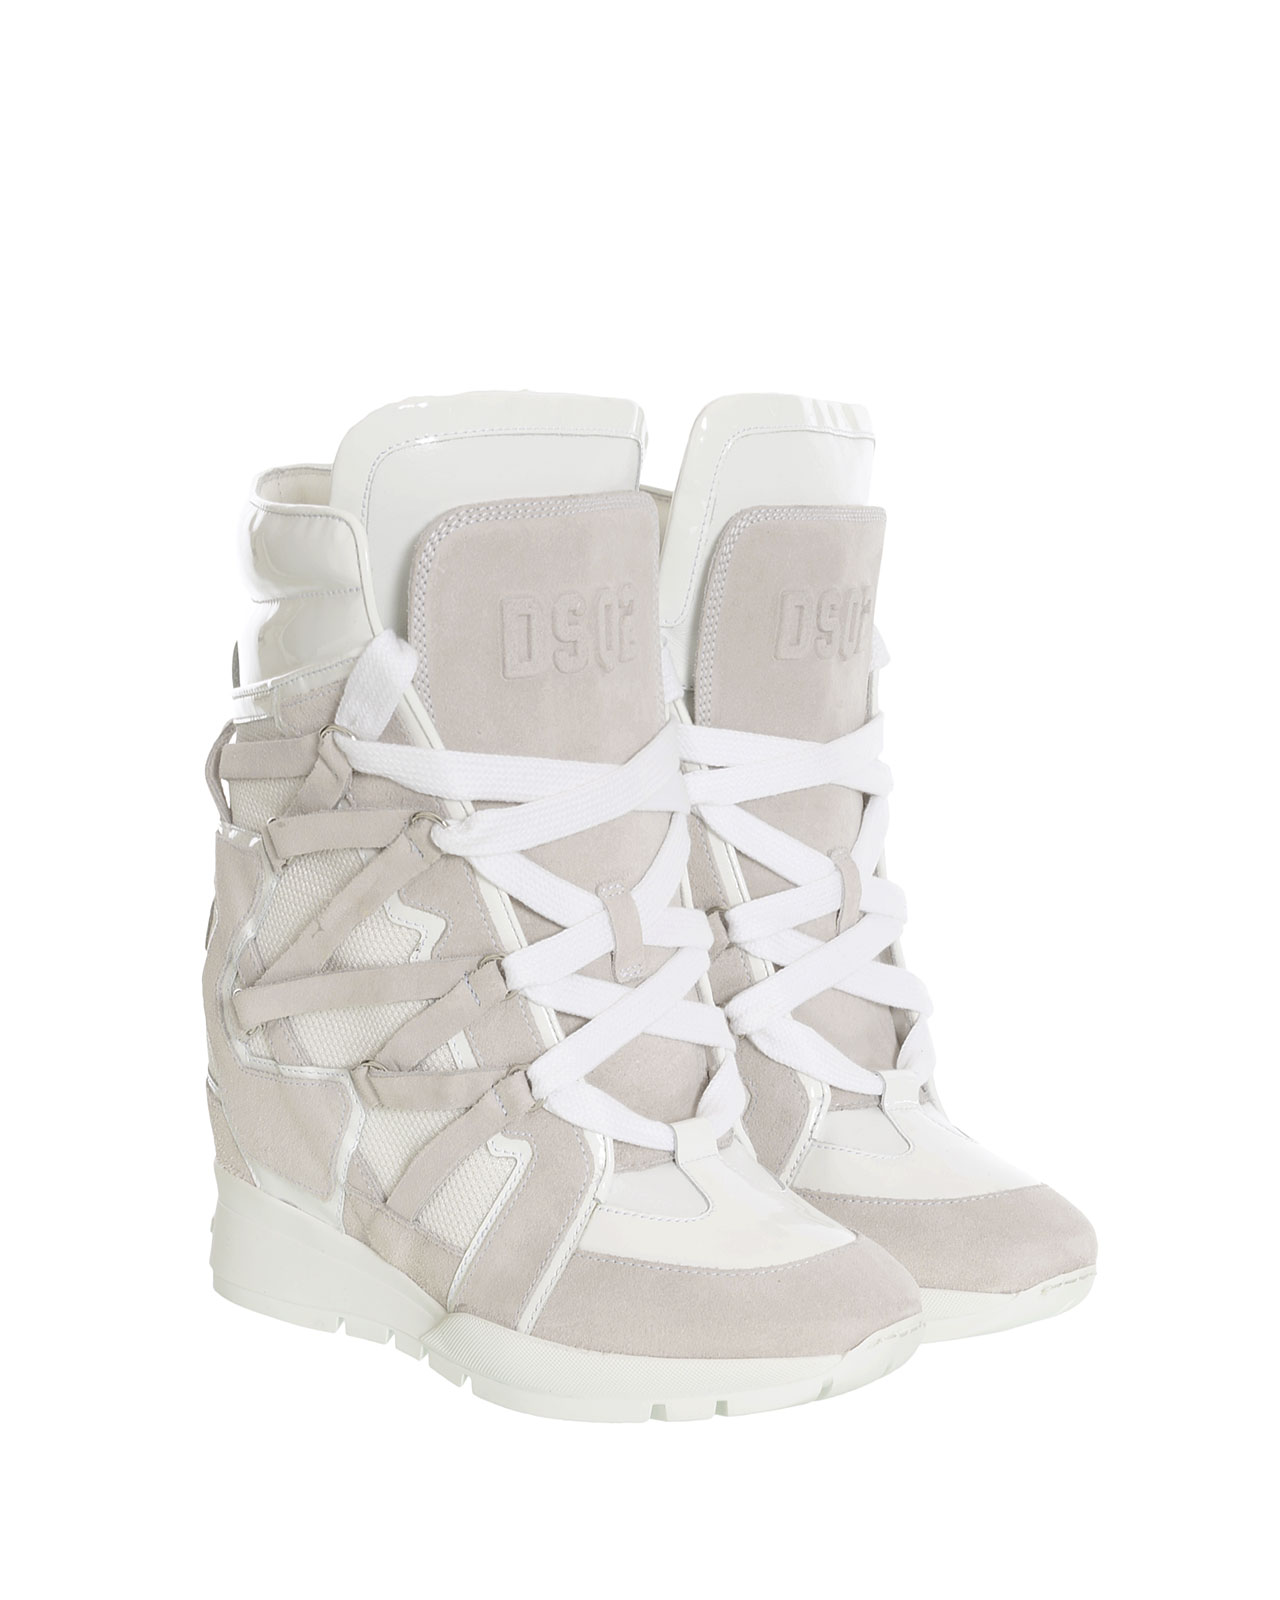 Dsquared wedge sneaker in pearlgrey/white